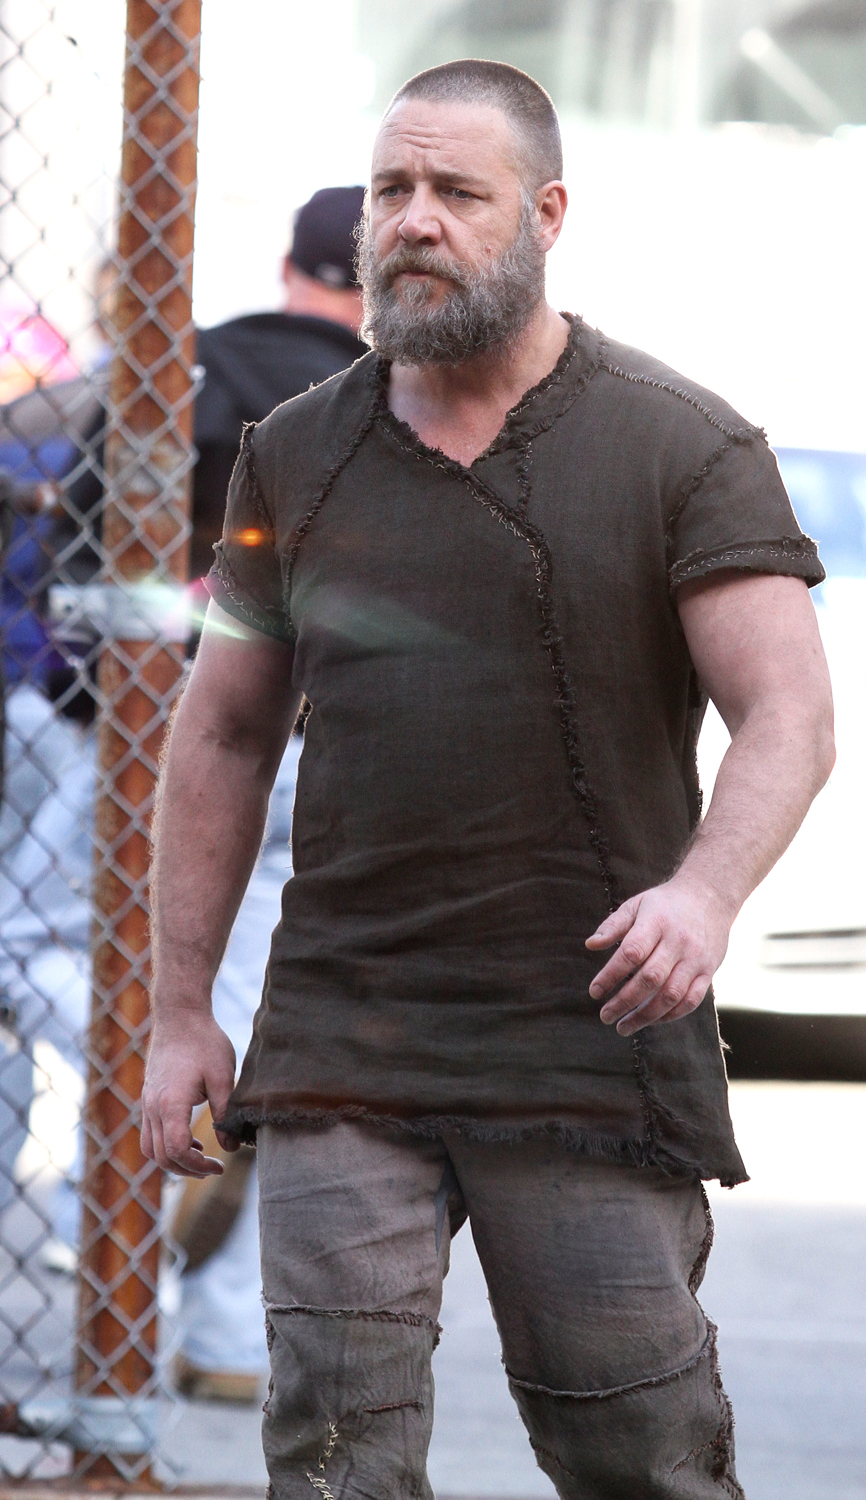 Russell Crowe builds himself an ark in 'Noah' - TODAY.com